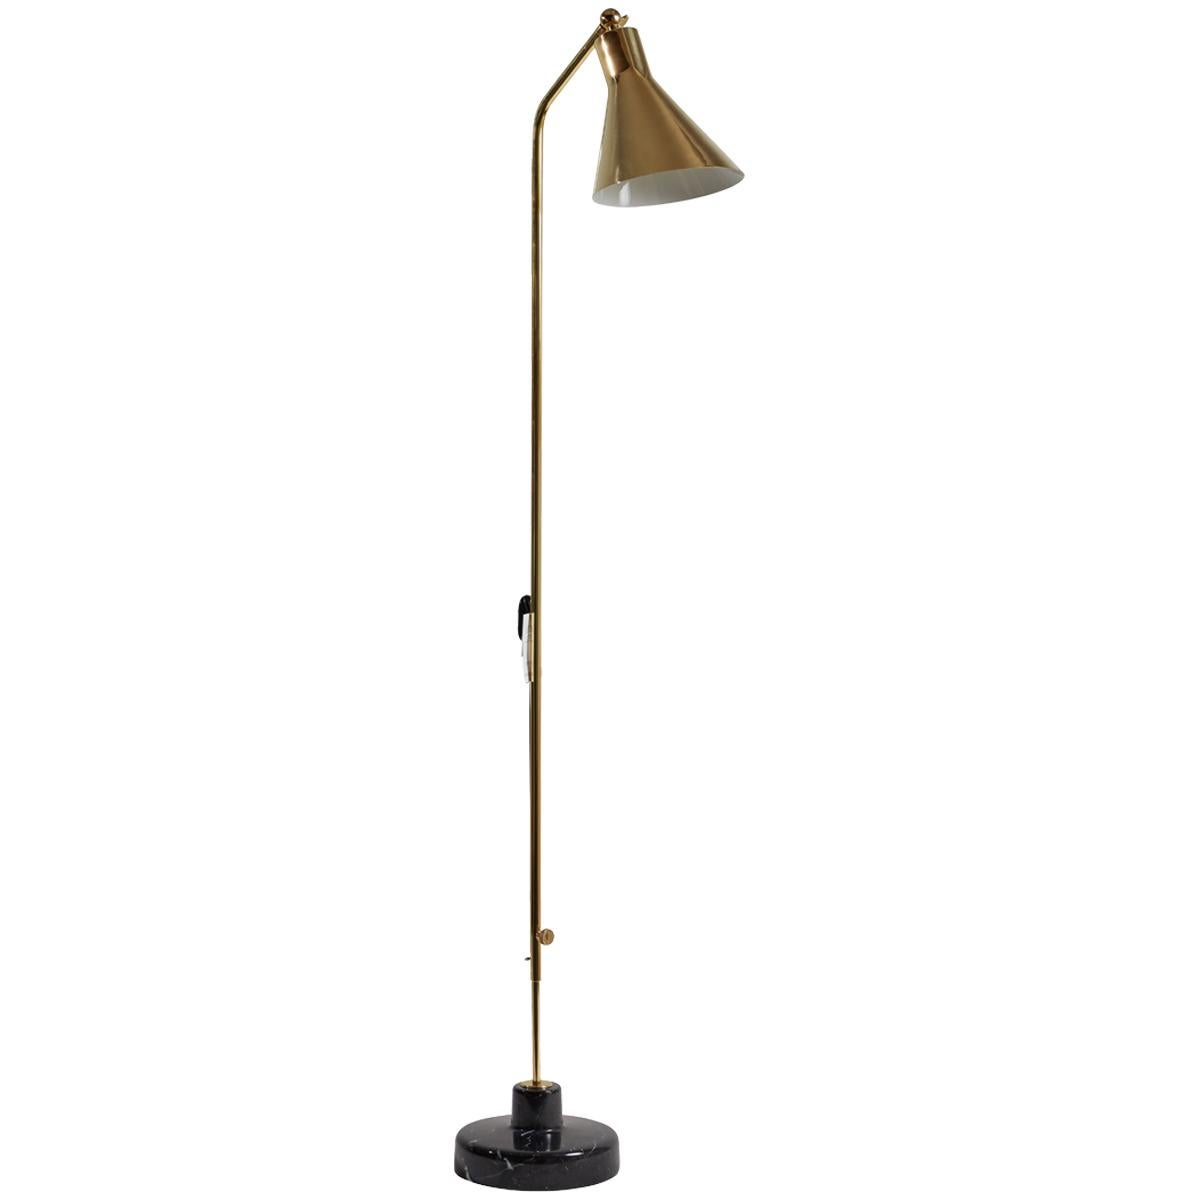 Fancy Standing Lamps Antique And Vintage Floor Lamps 9 726 For Sale At 1stdibs